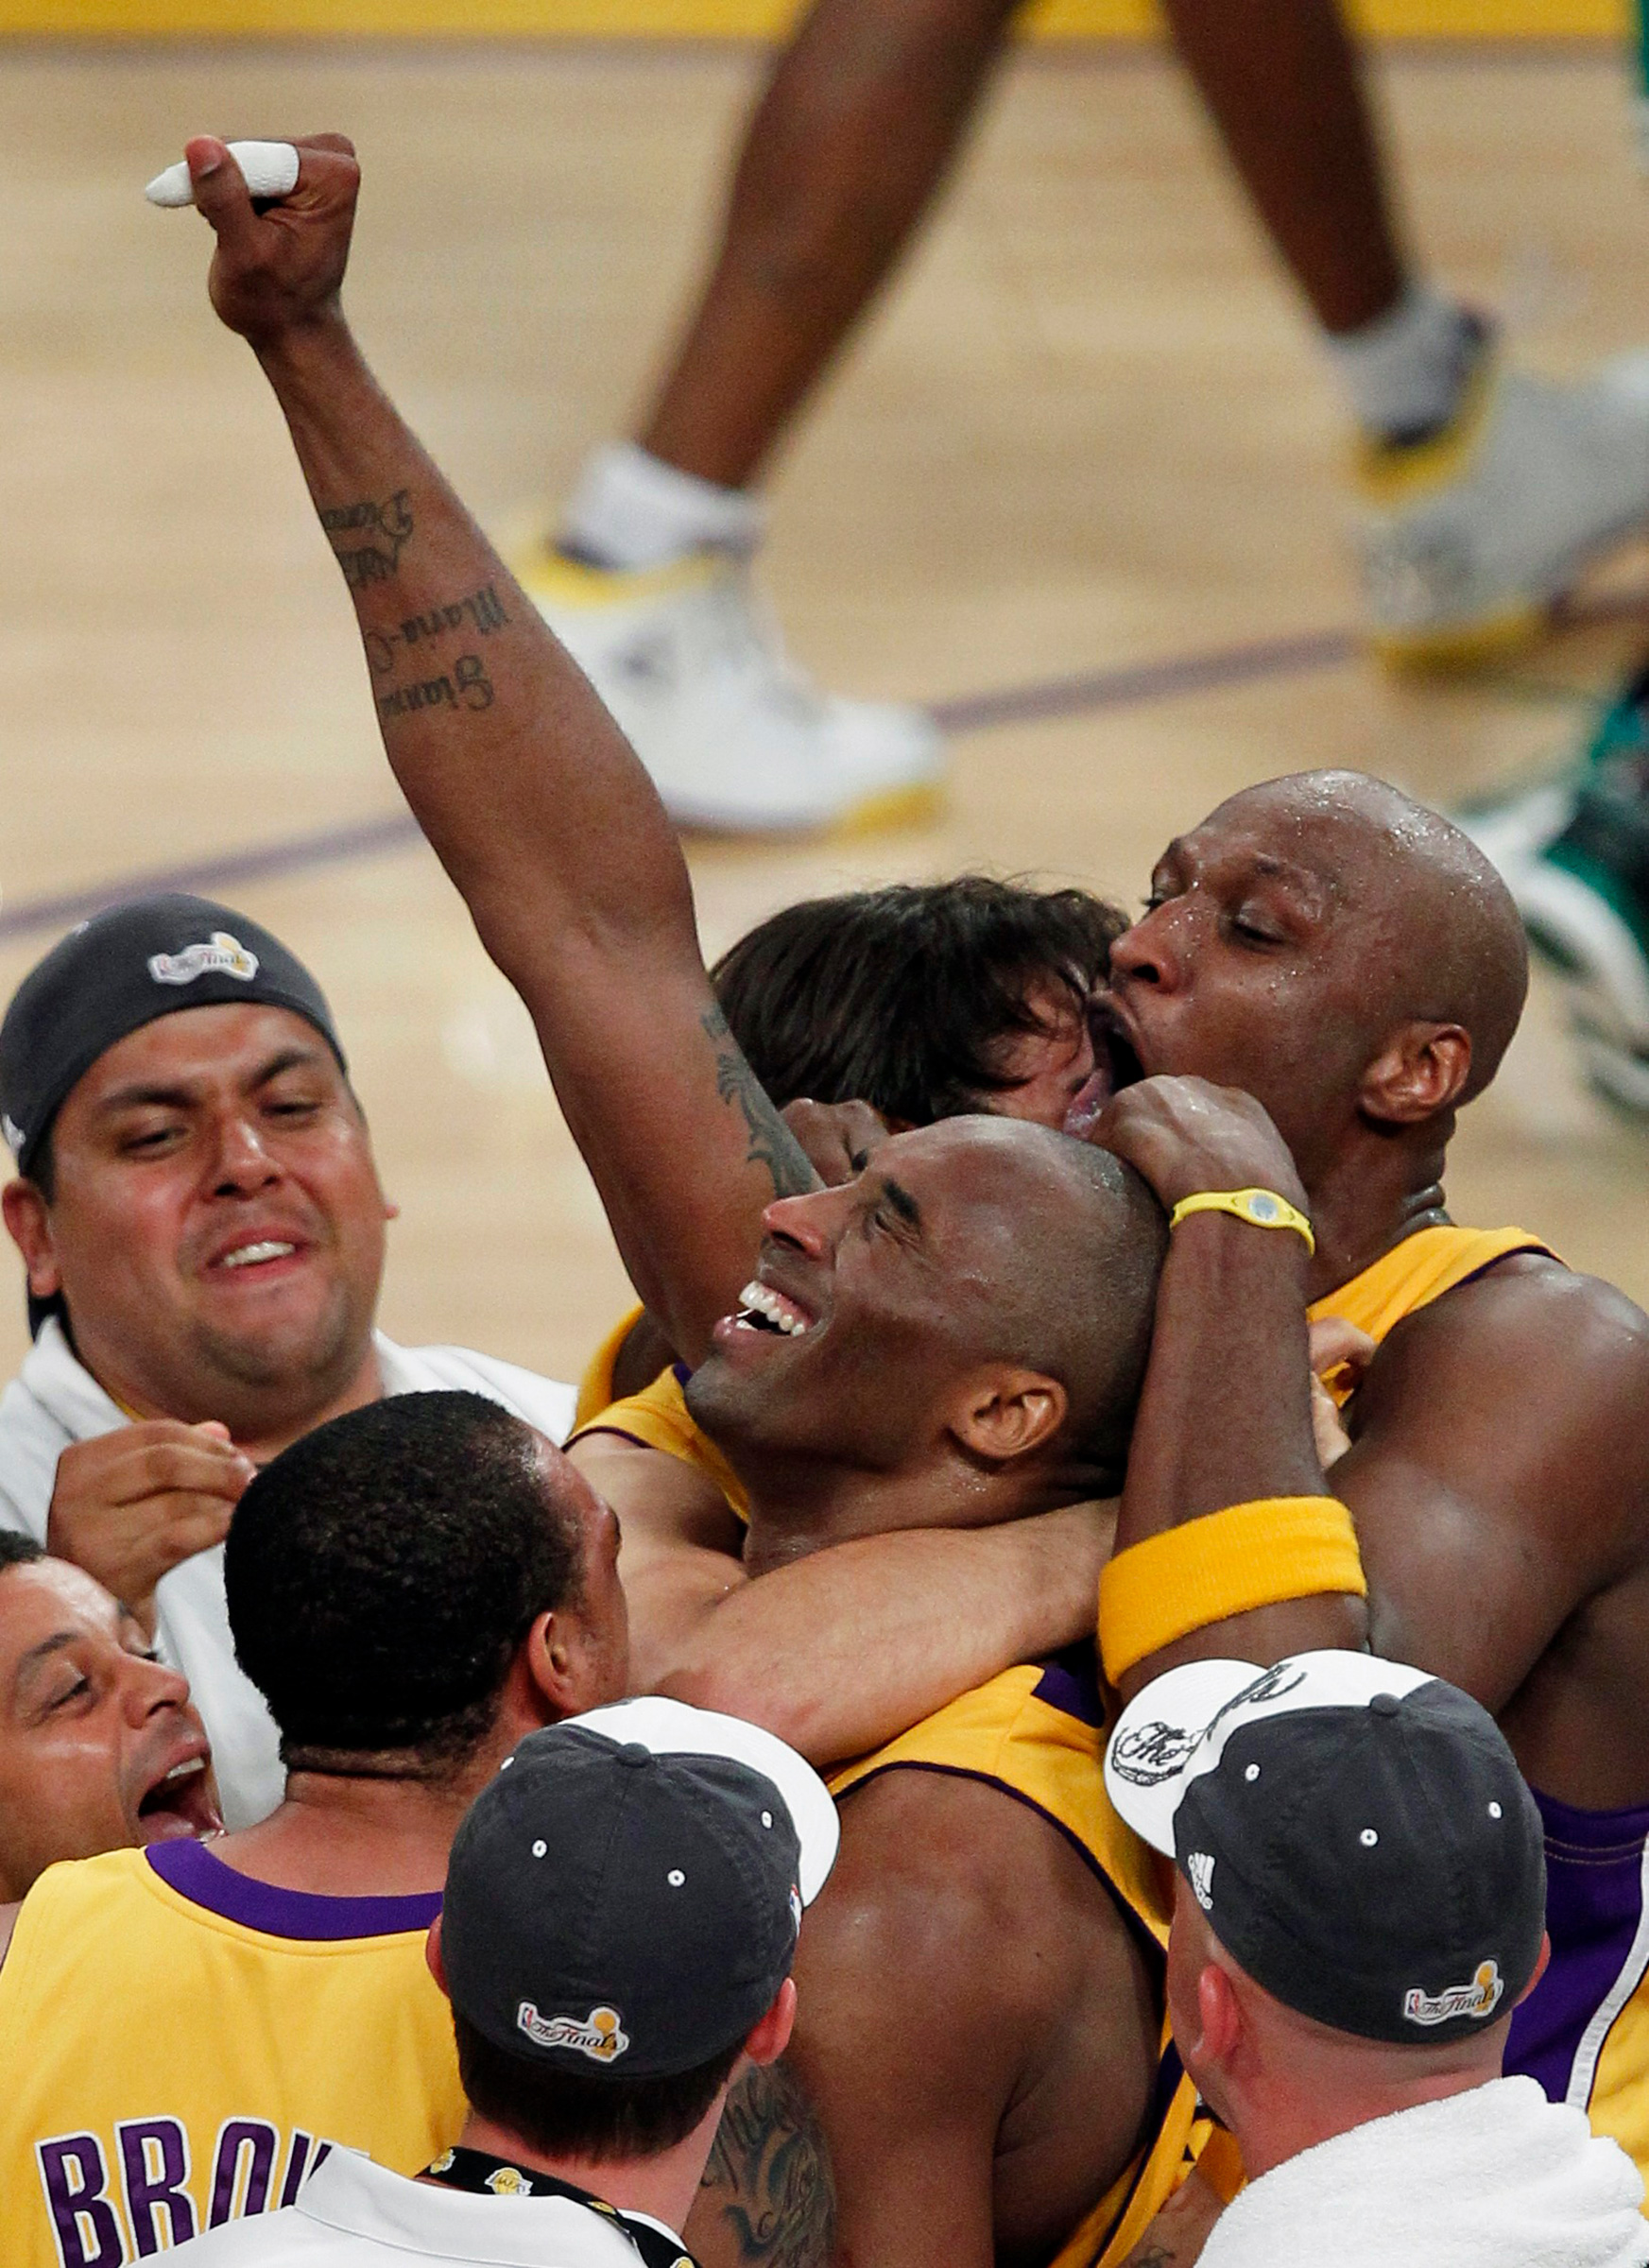 Bryant celebrates the 2010 NBA championship, after the Lakers defeated the Boston Celtics in Game 7